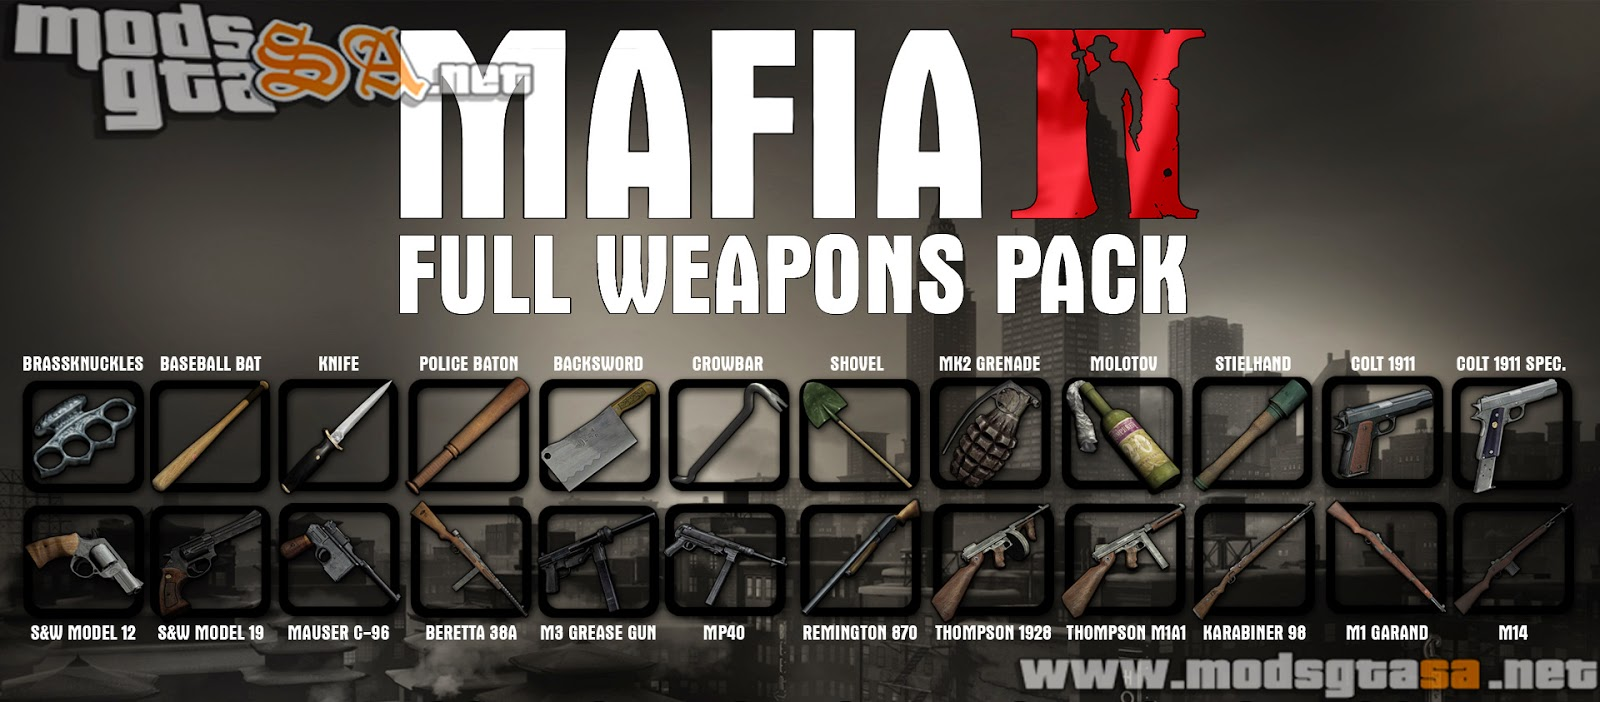 SA - Pack de Todas as Armas Mafia II